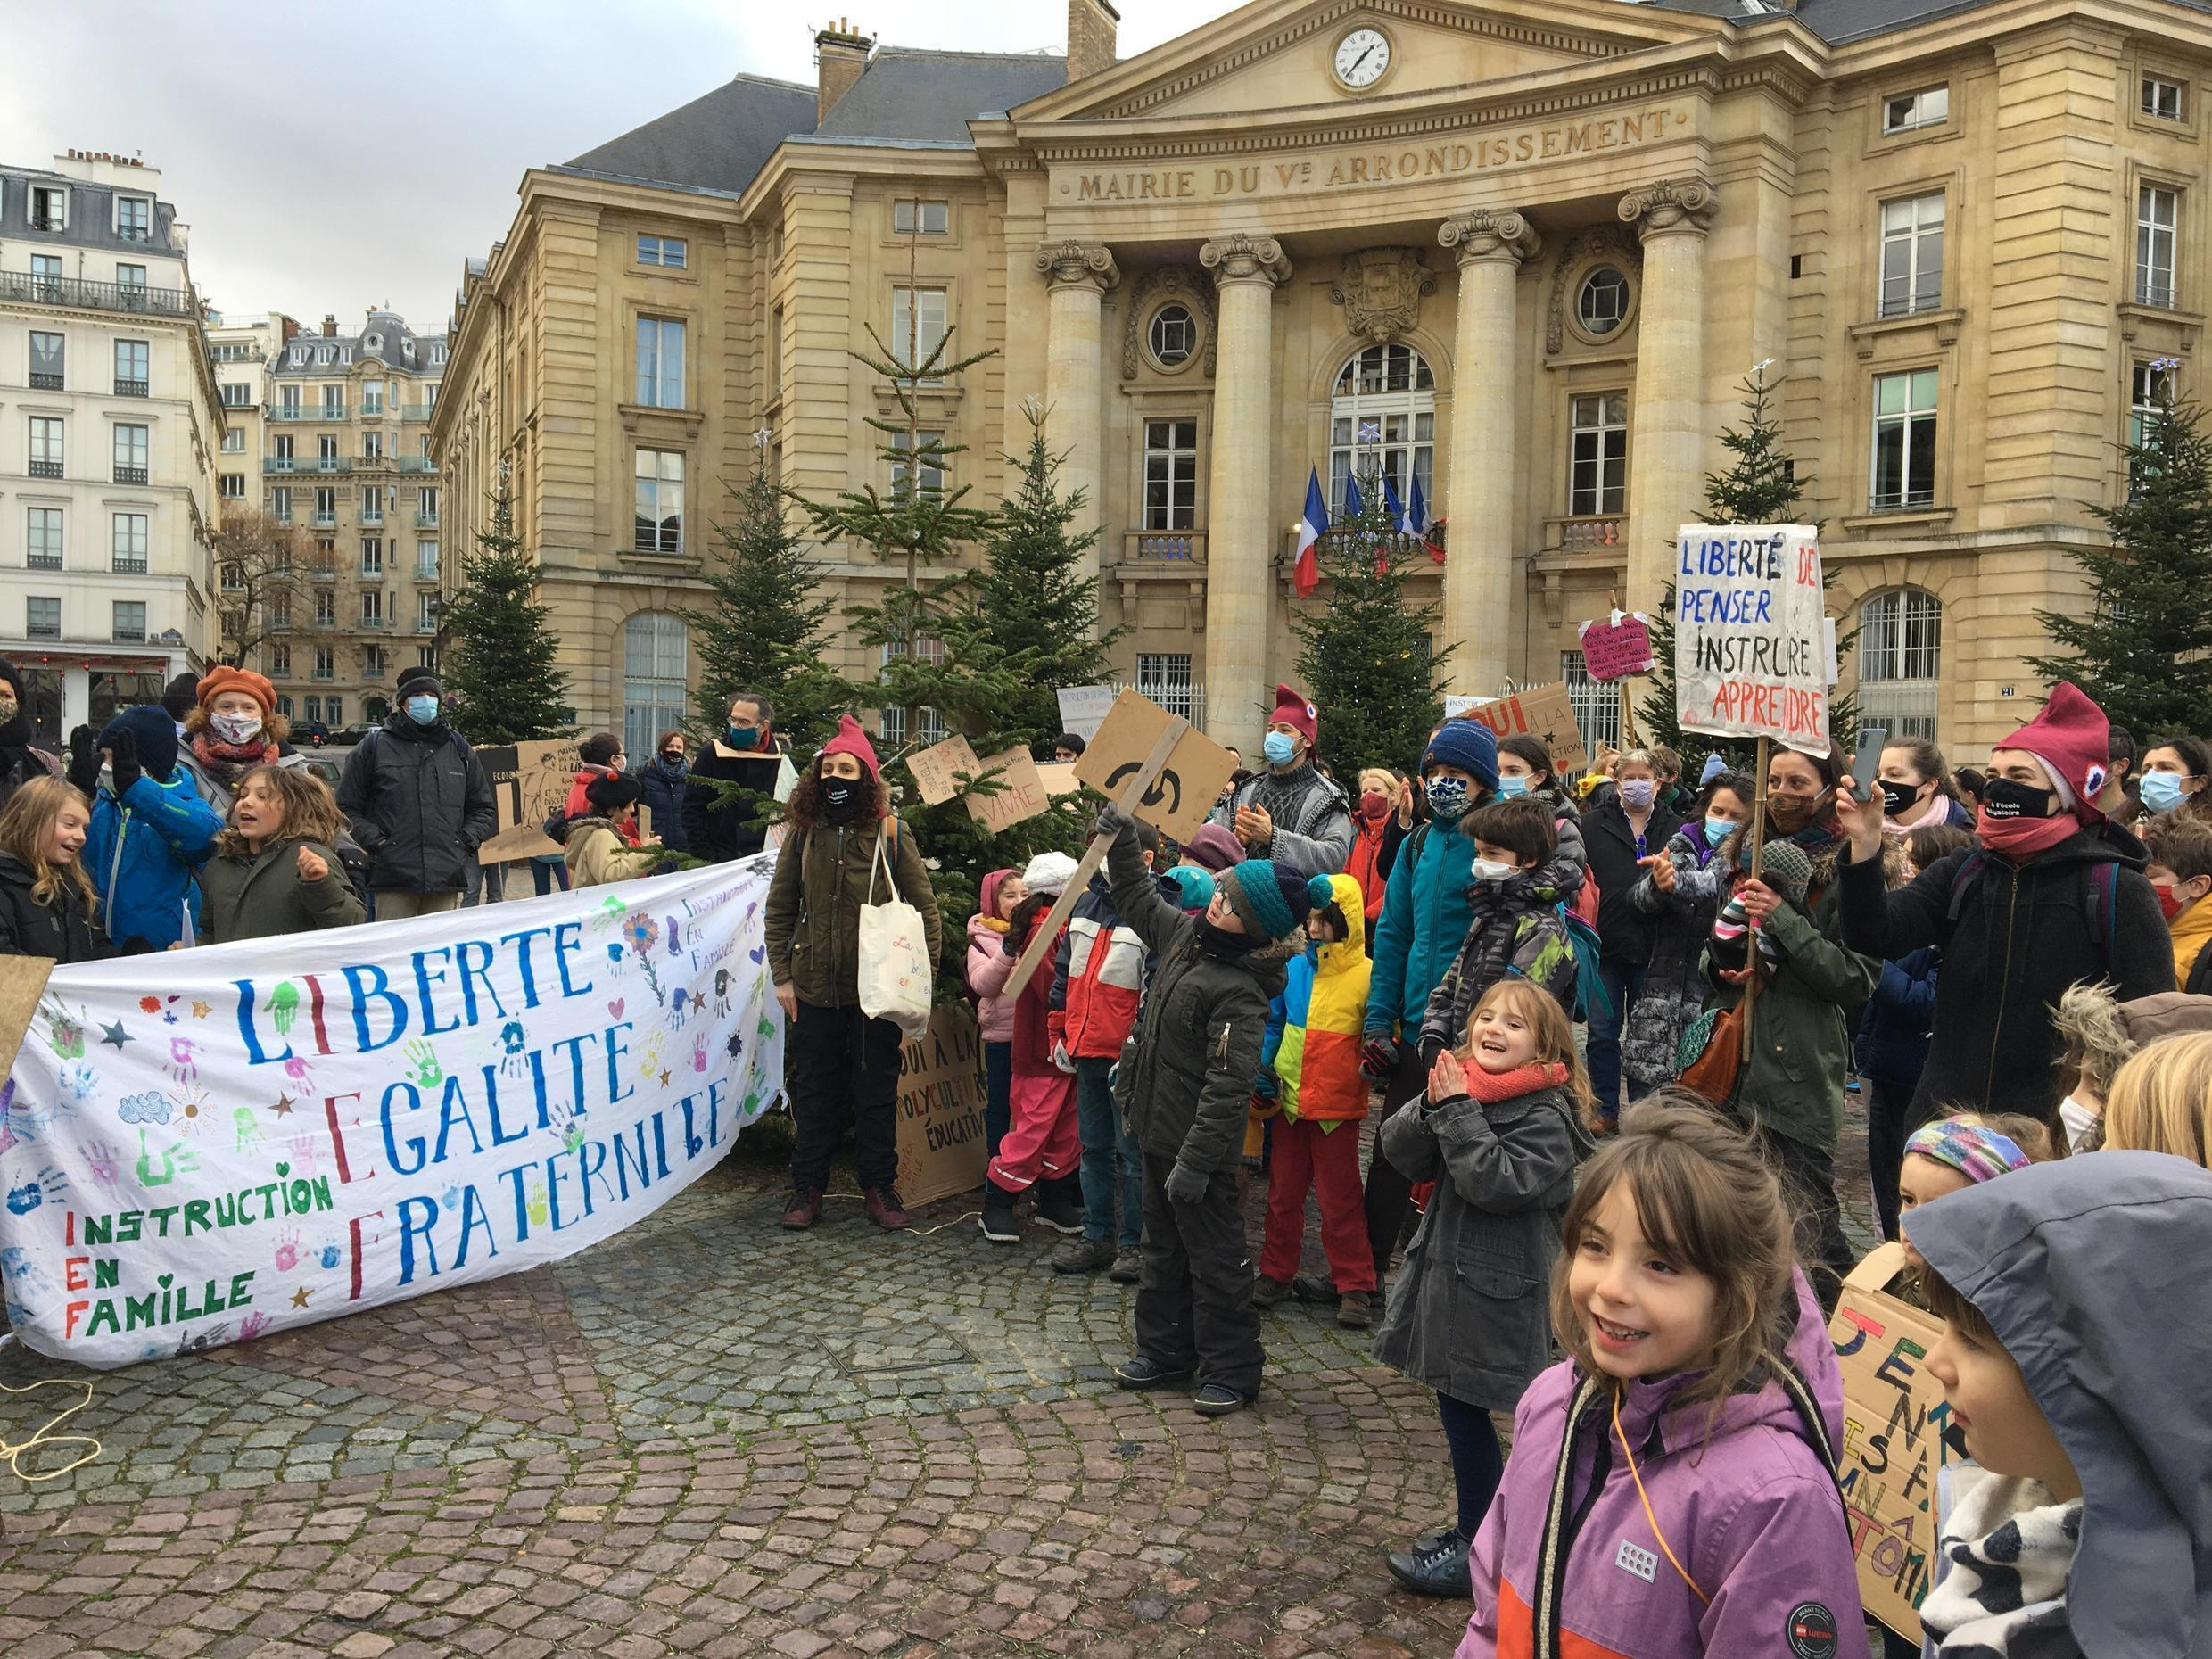 Around 200 families attended a rally in Paris support of home-schooling. They say article 21 of the government's proposed 'separatism bill' is a threat to this type of education, 17 January 2021.